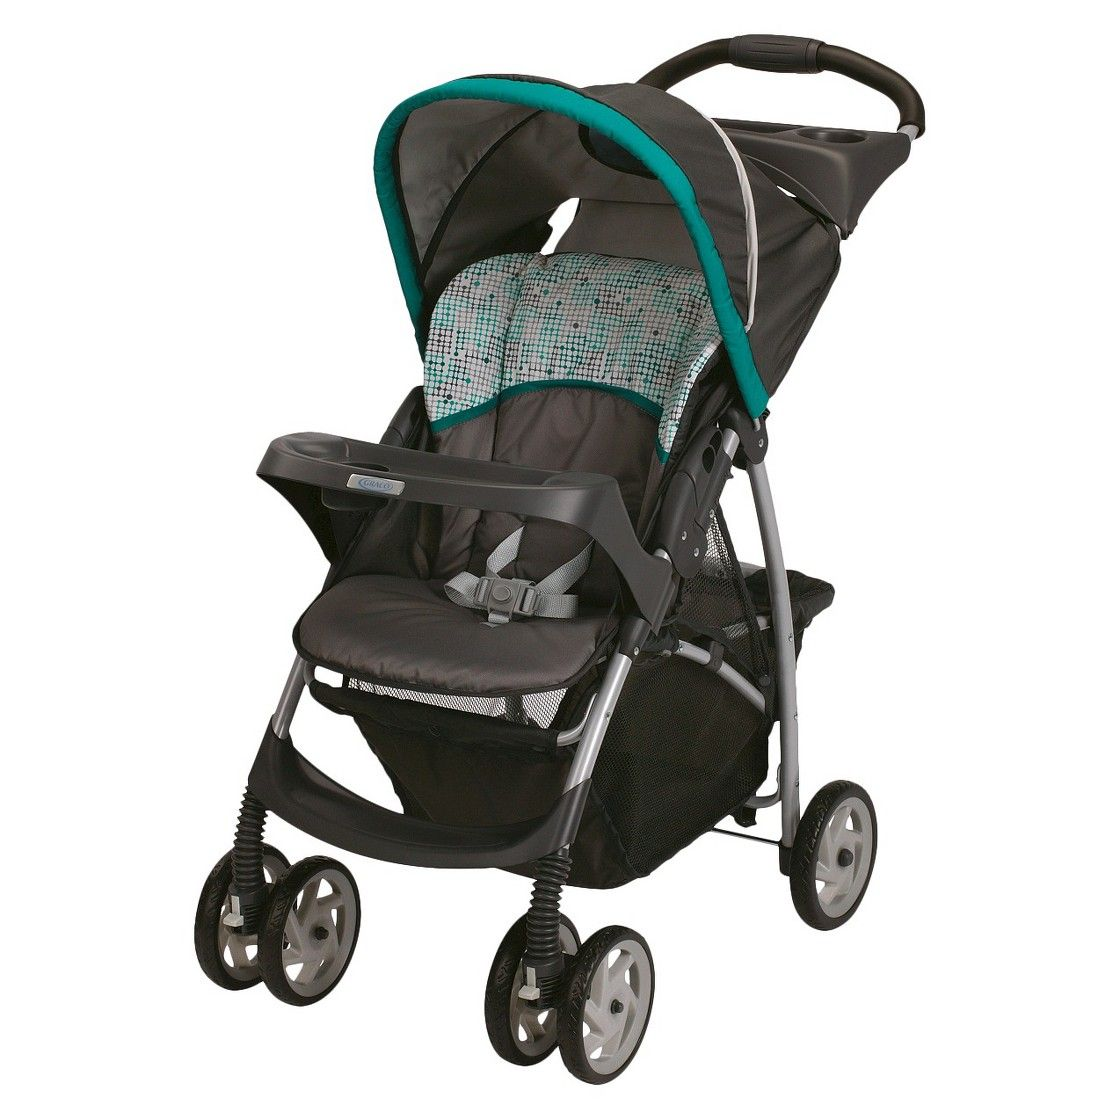 Graco LiteRider Classic Connect Stroller Stroller, Graco